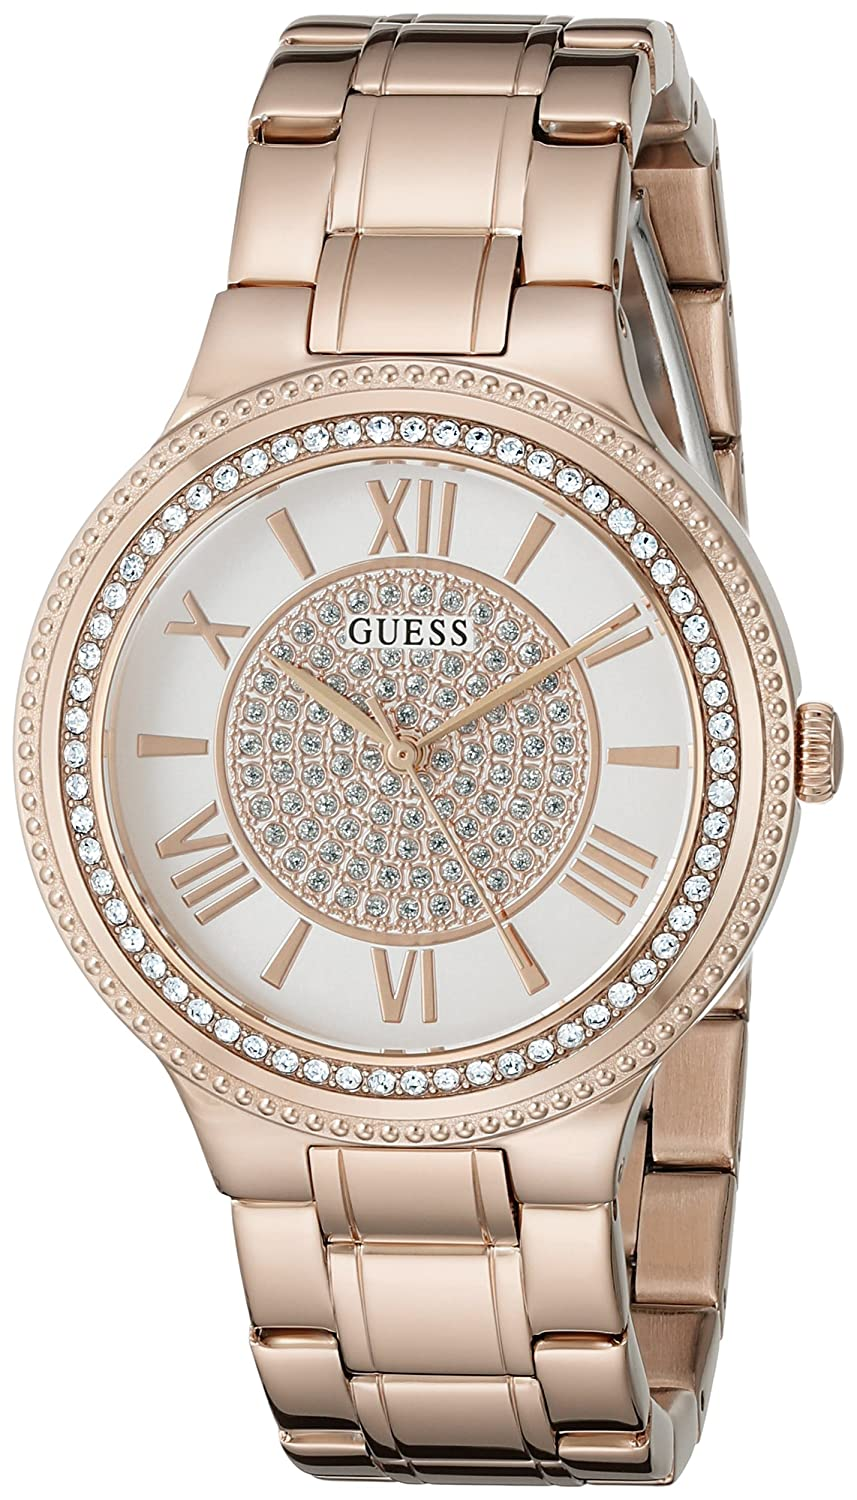 Amazon.com: Guess Womens Stainless Steel Crystal Accented Watch, Color Gold-Tone (Model: U0637L2): Guess: Watches